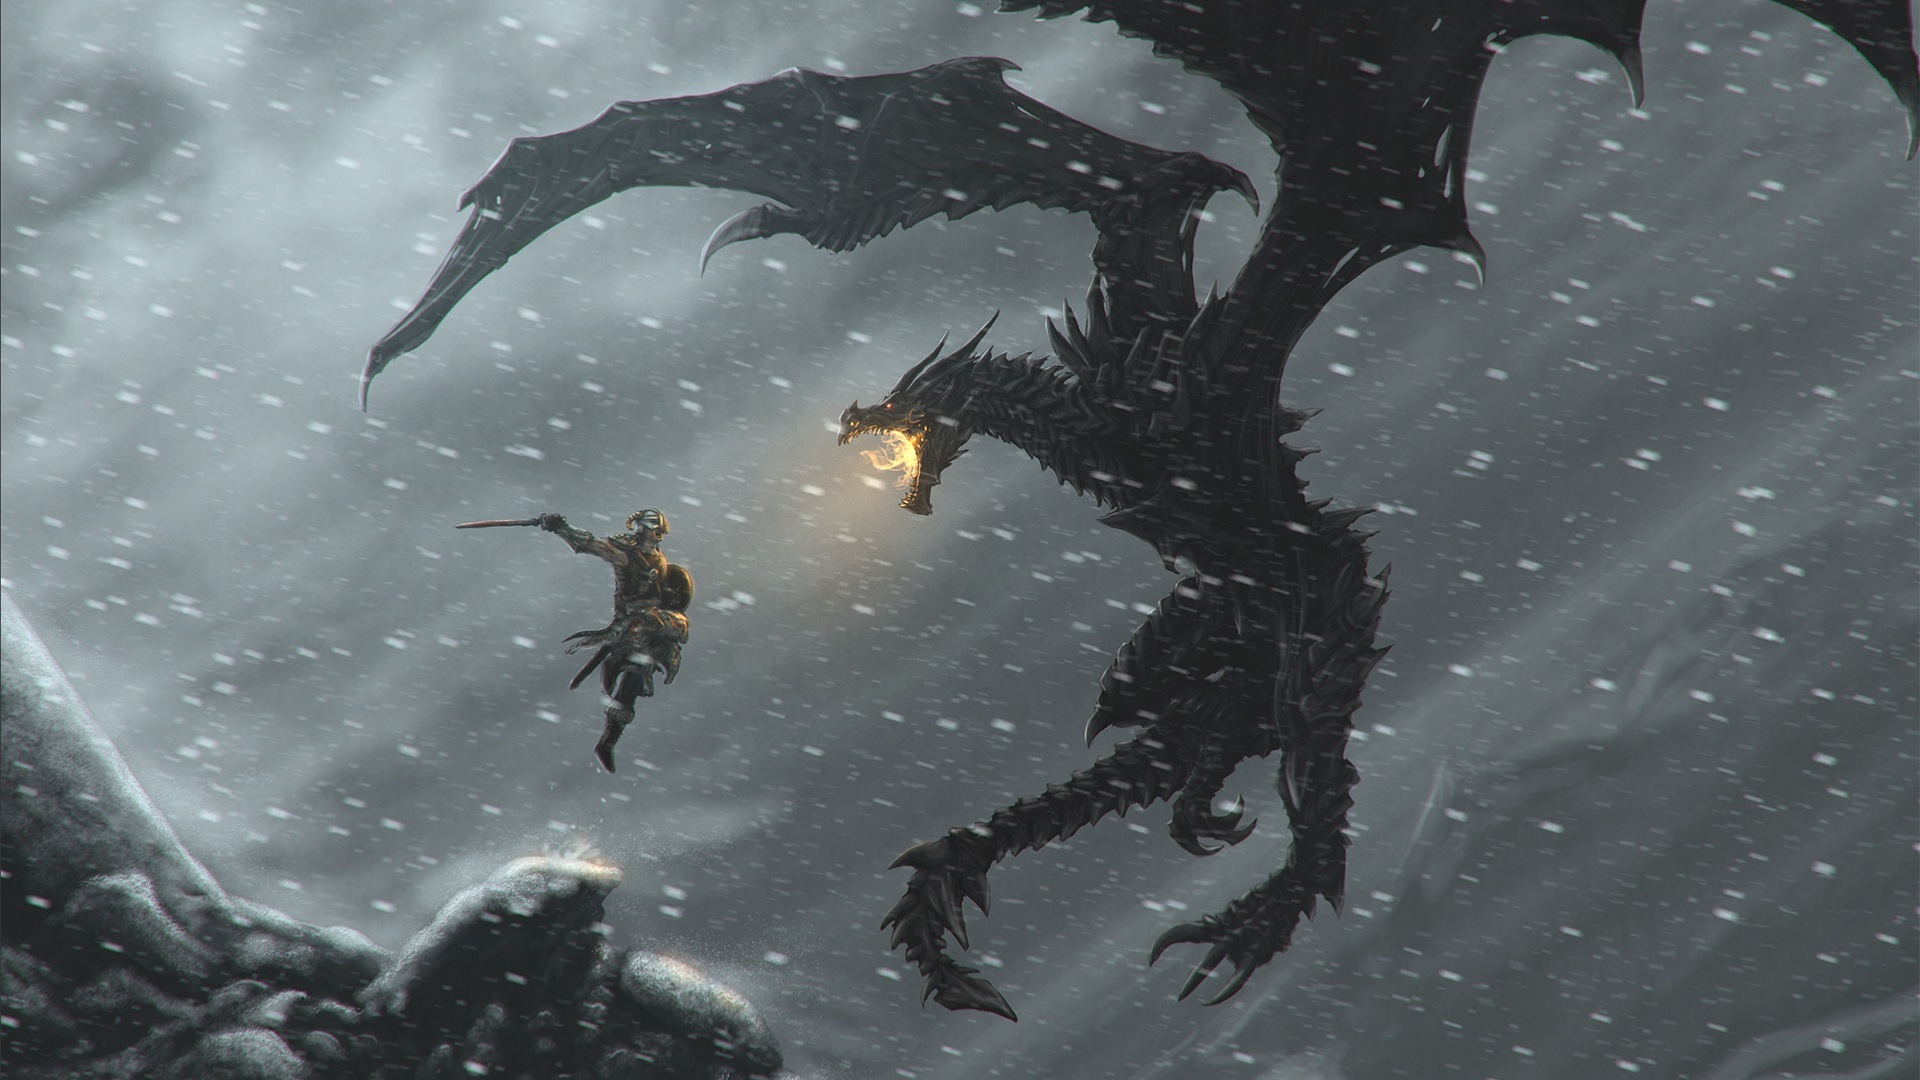 22991 download wallpaper Games, Dragons, Elder Scrolls screensavers and pictures for free